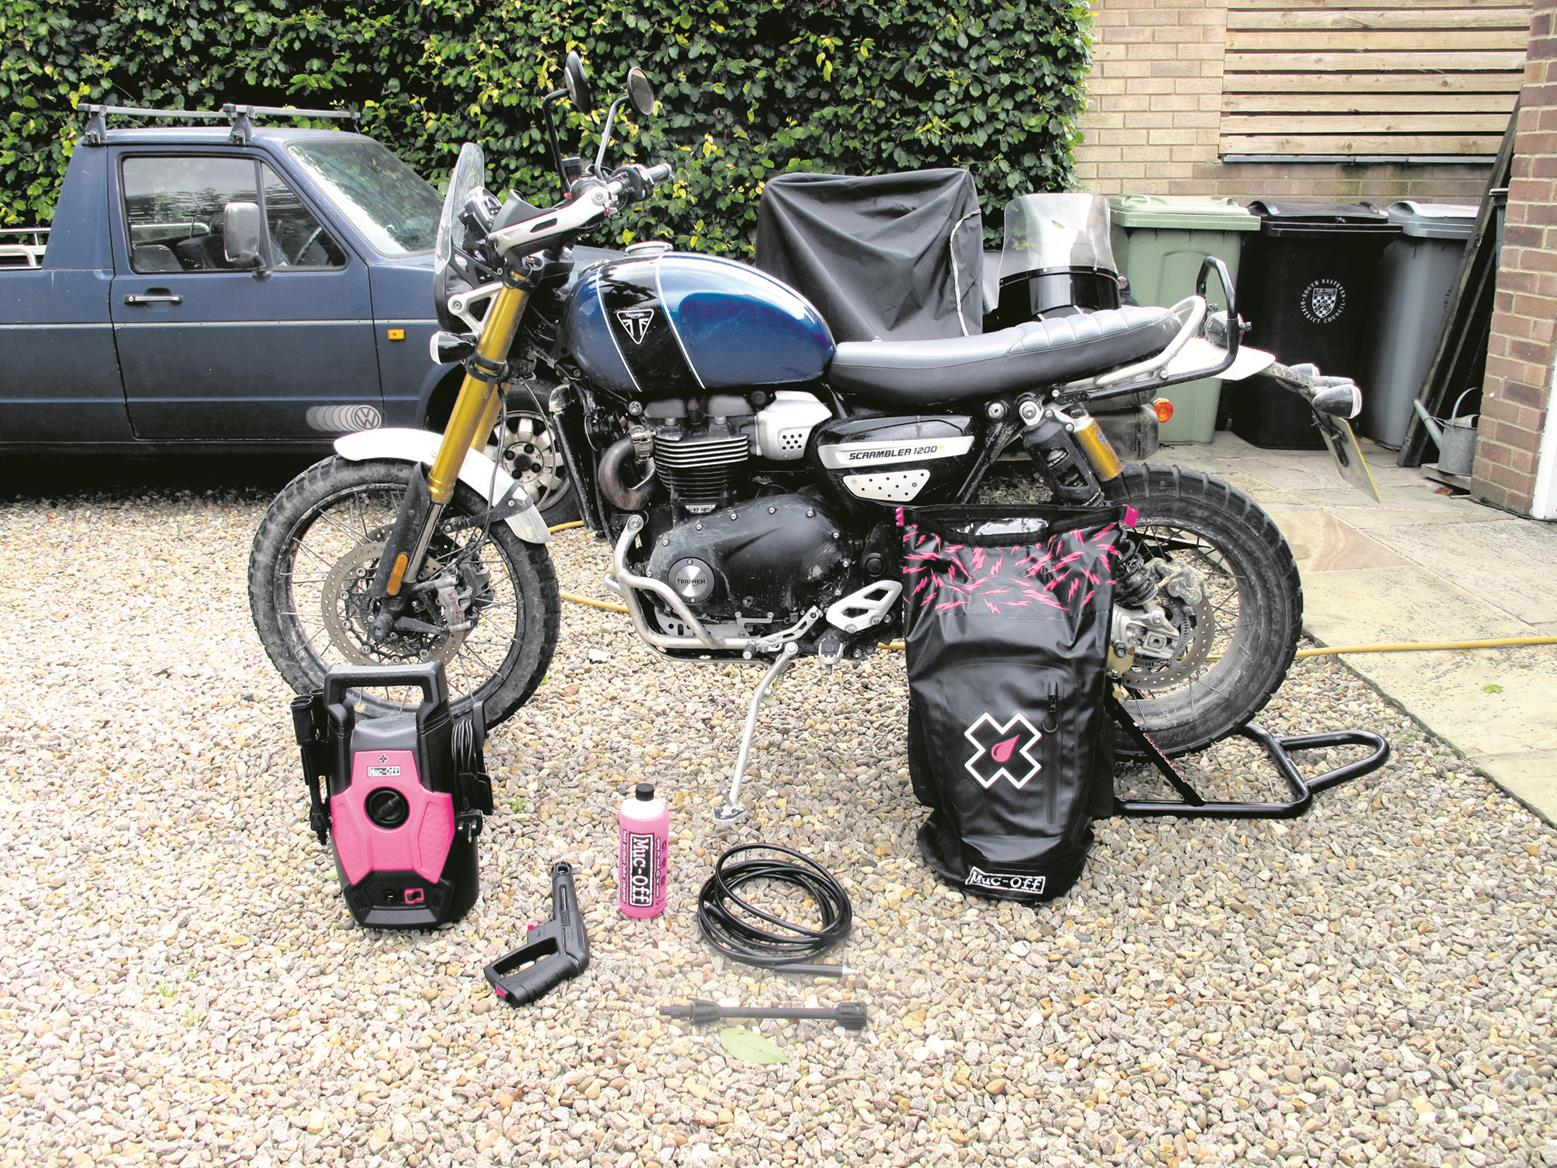 Preparing to clean the Scrambler 1200 XE